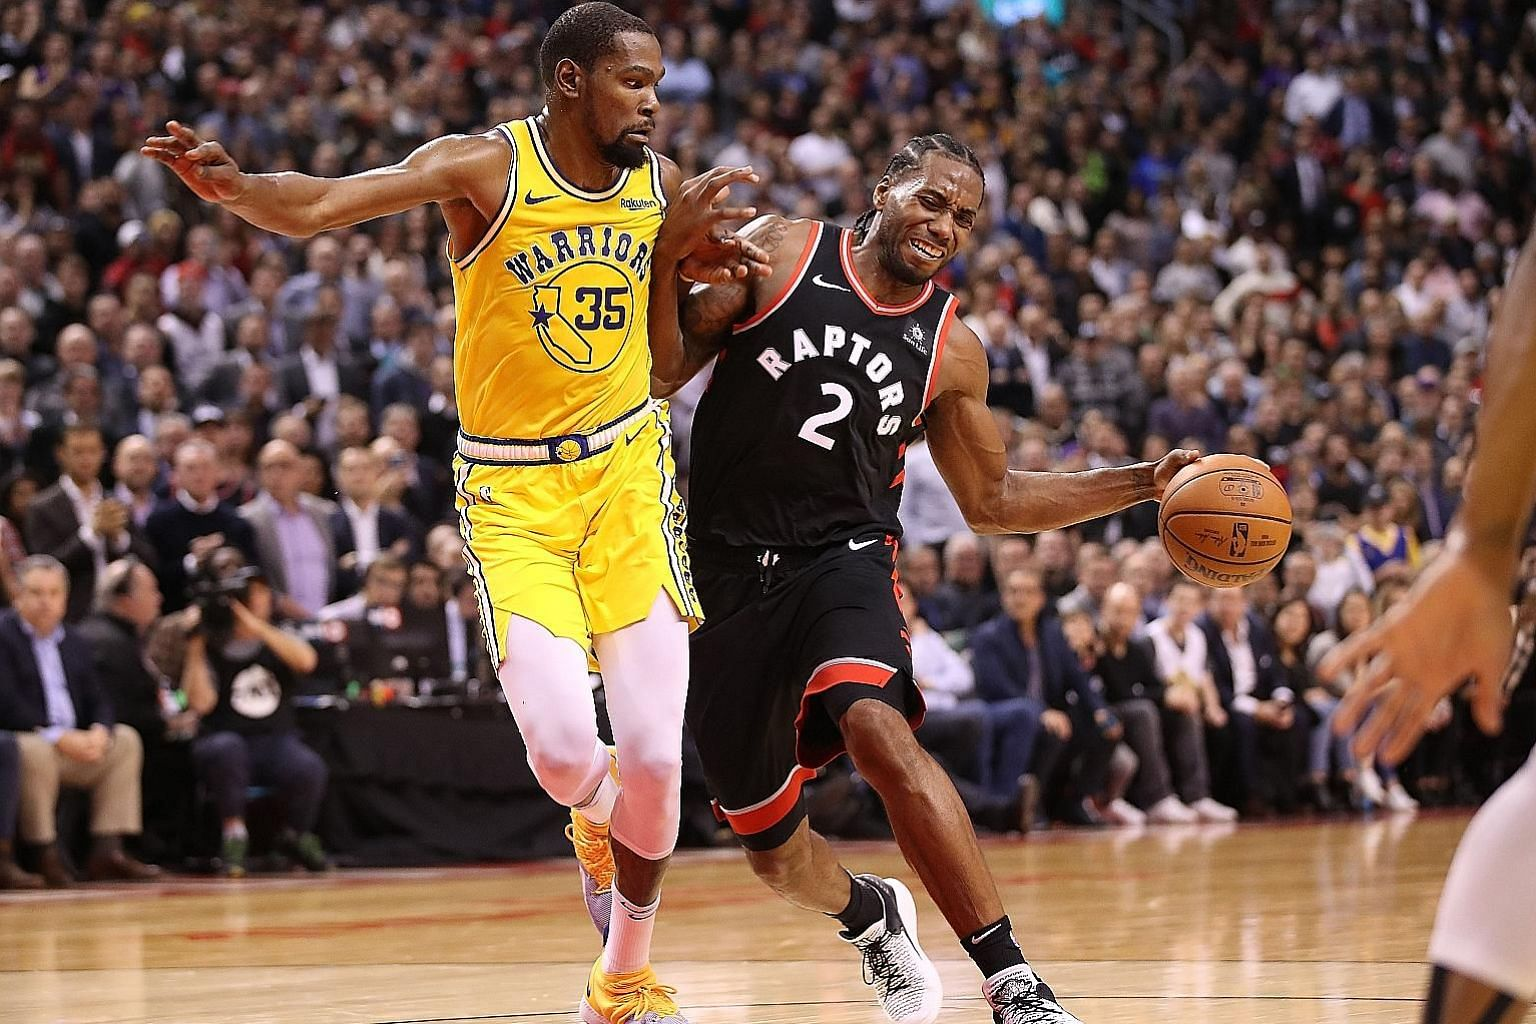 In a battle of the two teams' top scorers, a monster 51-point effort by Golden State's Kevin Durant was not enough, with Raptors forward Kawhi Leonard contributing 37 points in Toronto's 131-128 overtime win over the Warriors on Thursday.